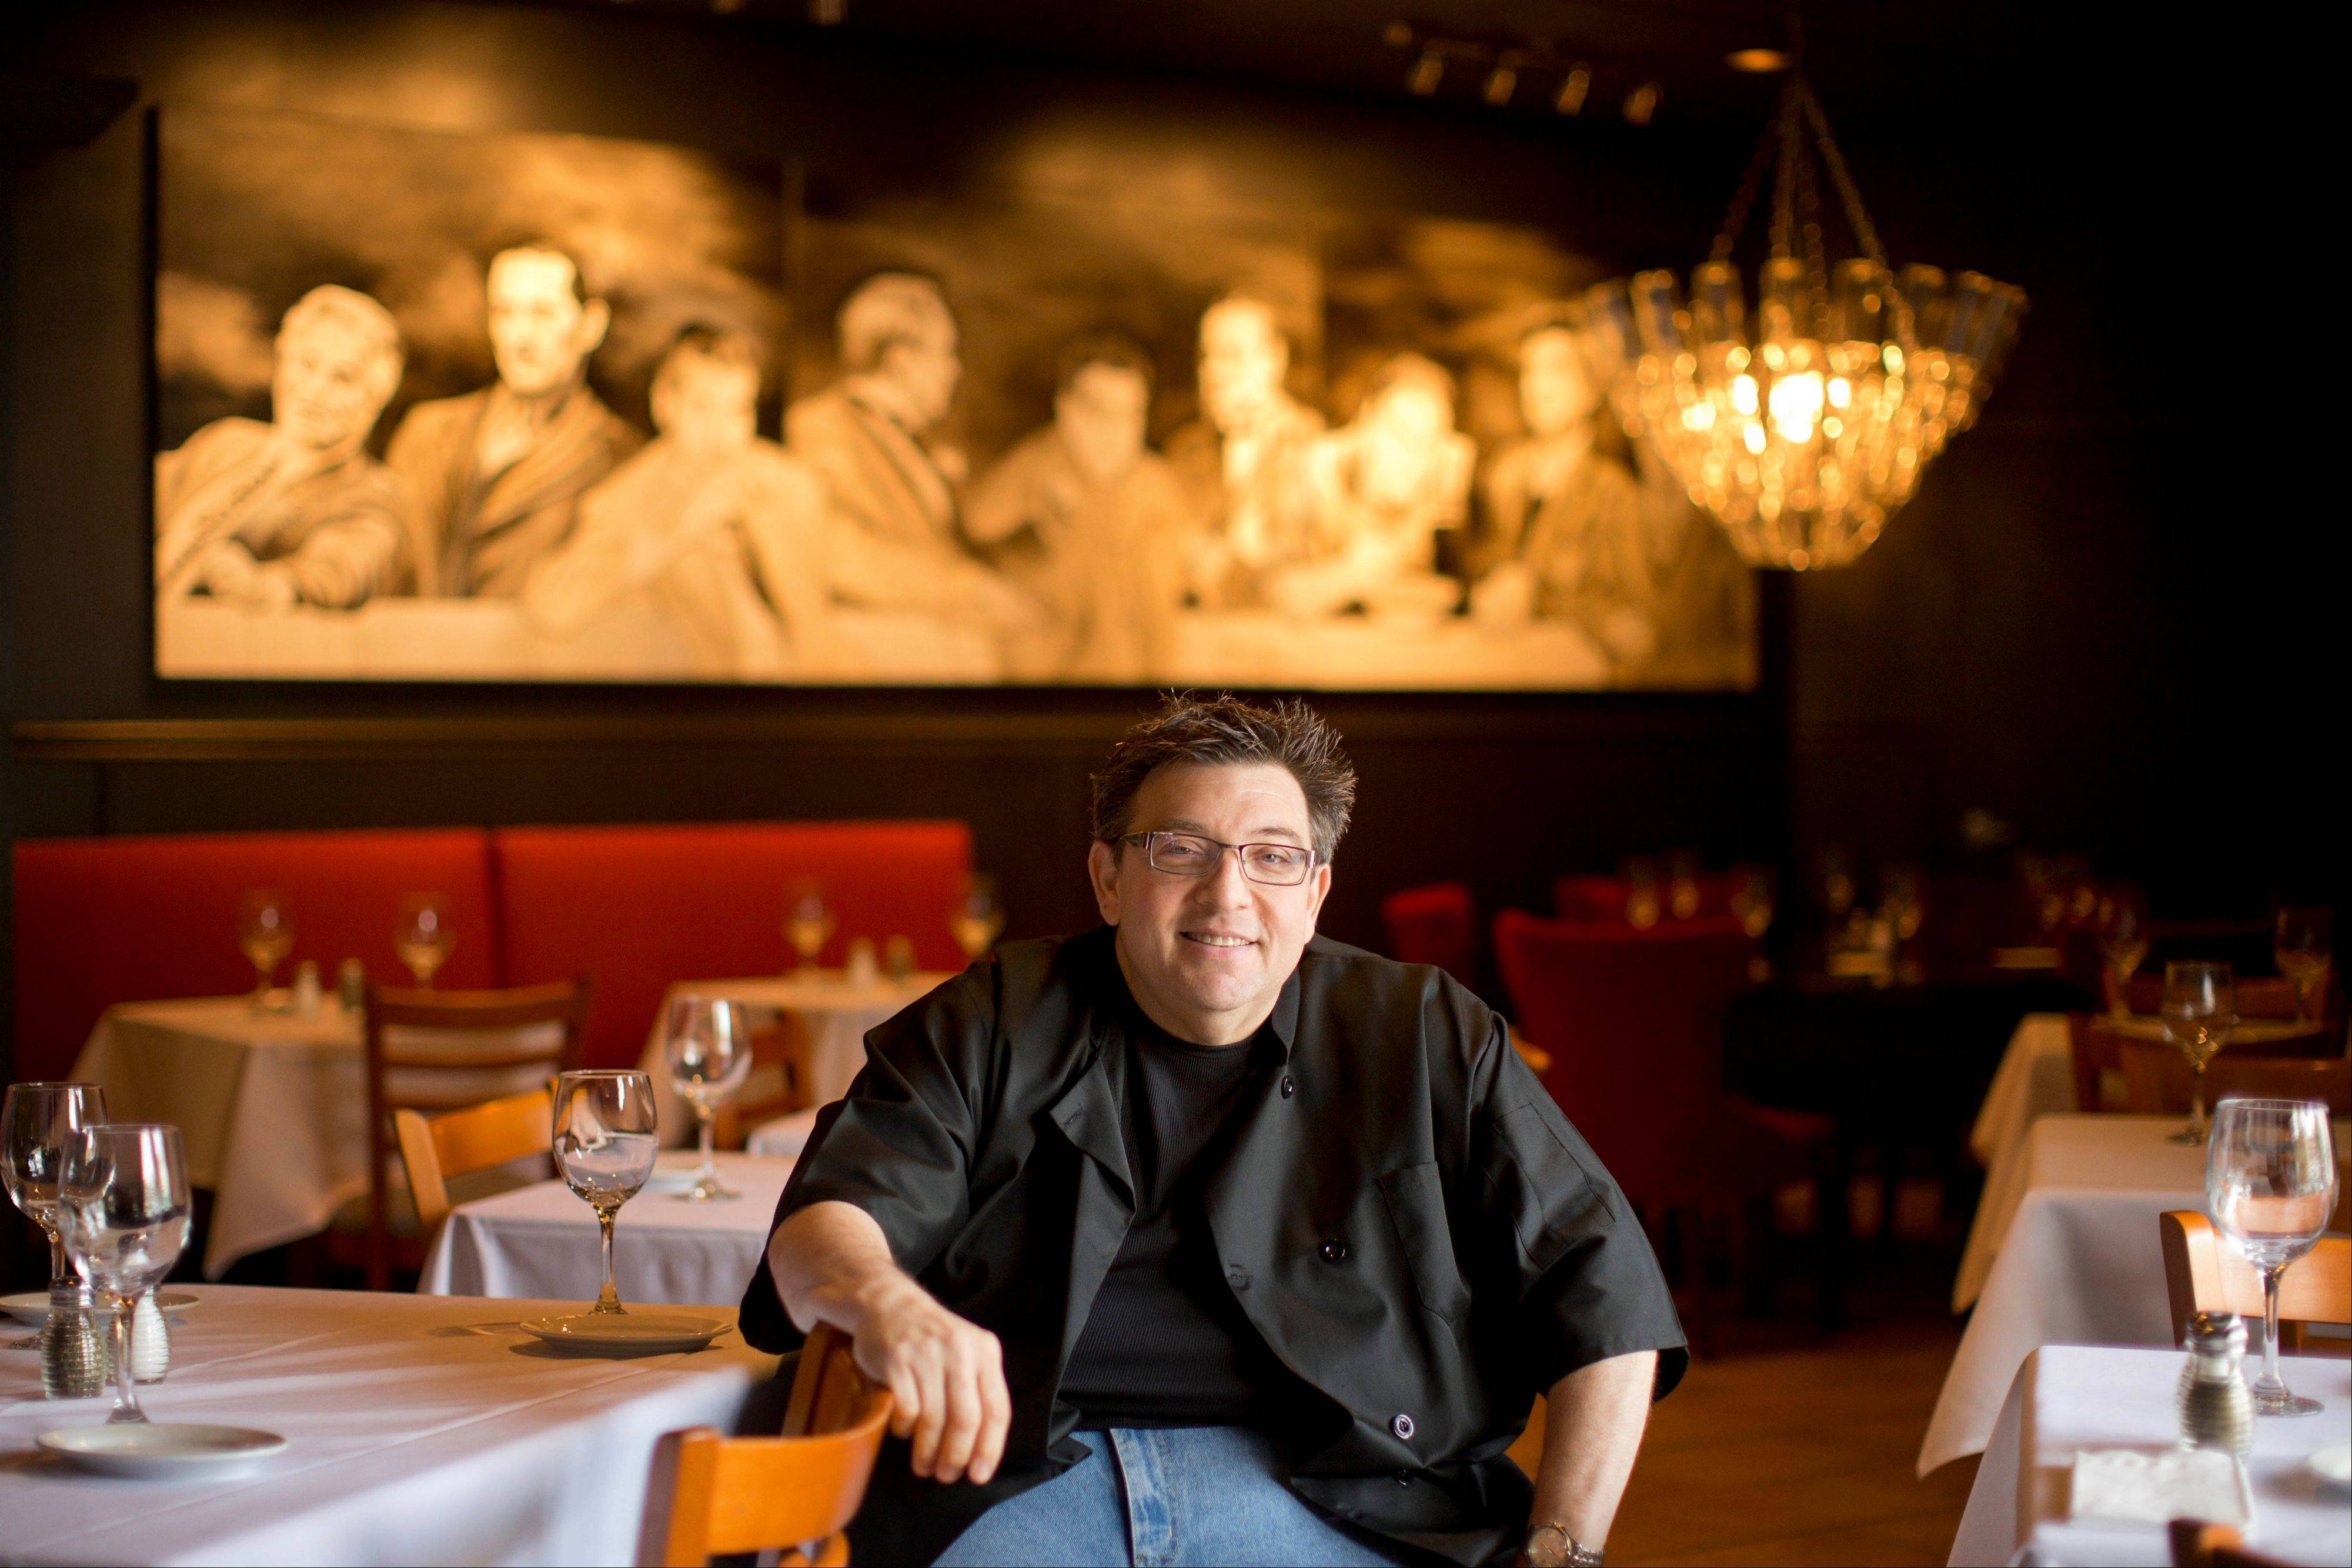 Superior Angelo Lutz At His Newly Expanded Restaurant, The Kitchen Consigliere, In  Collingswood, N.J.